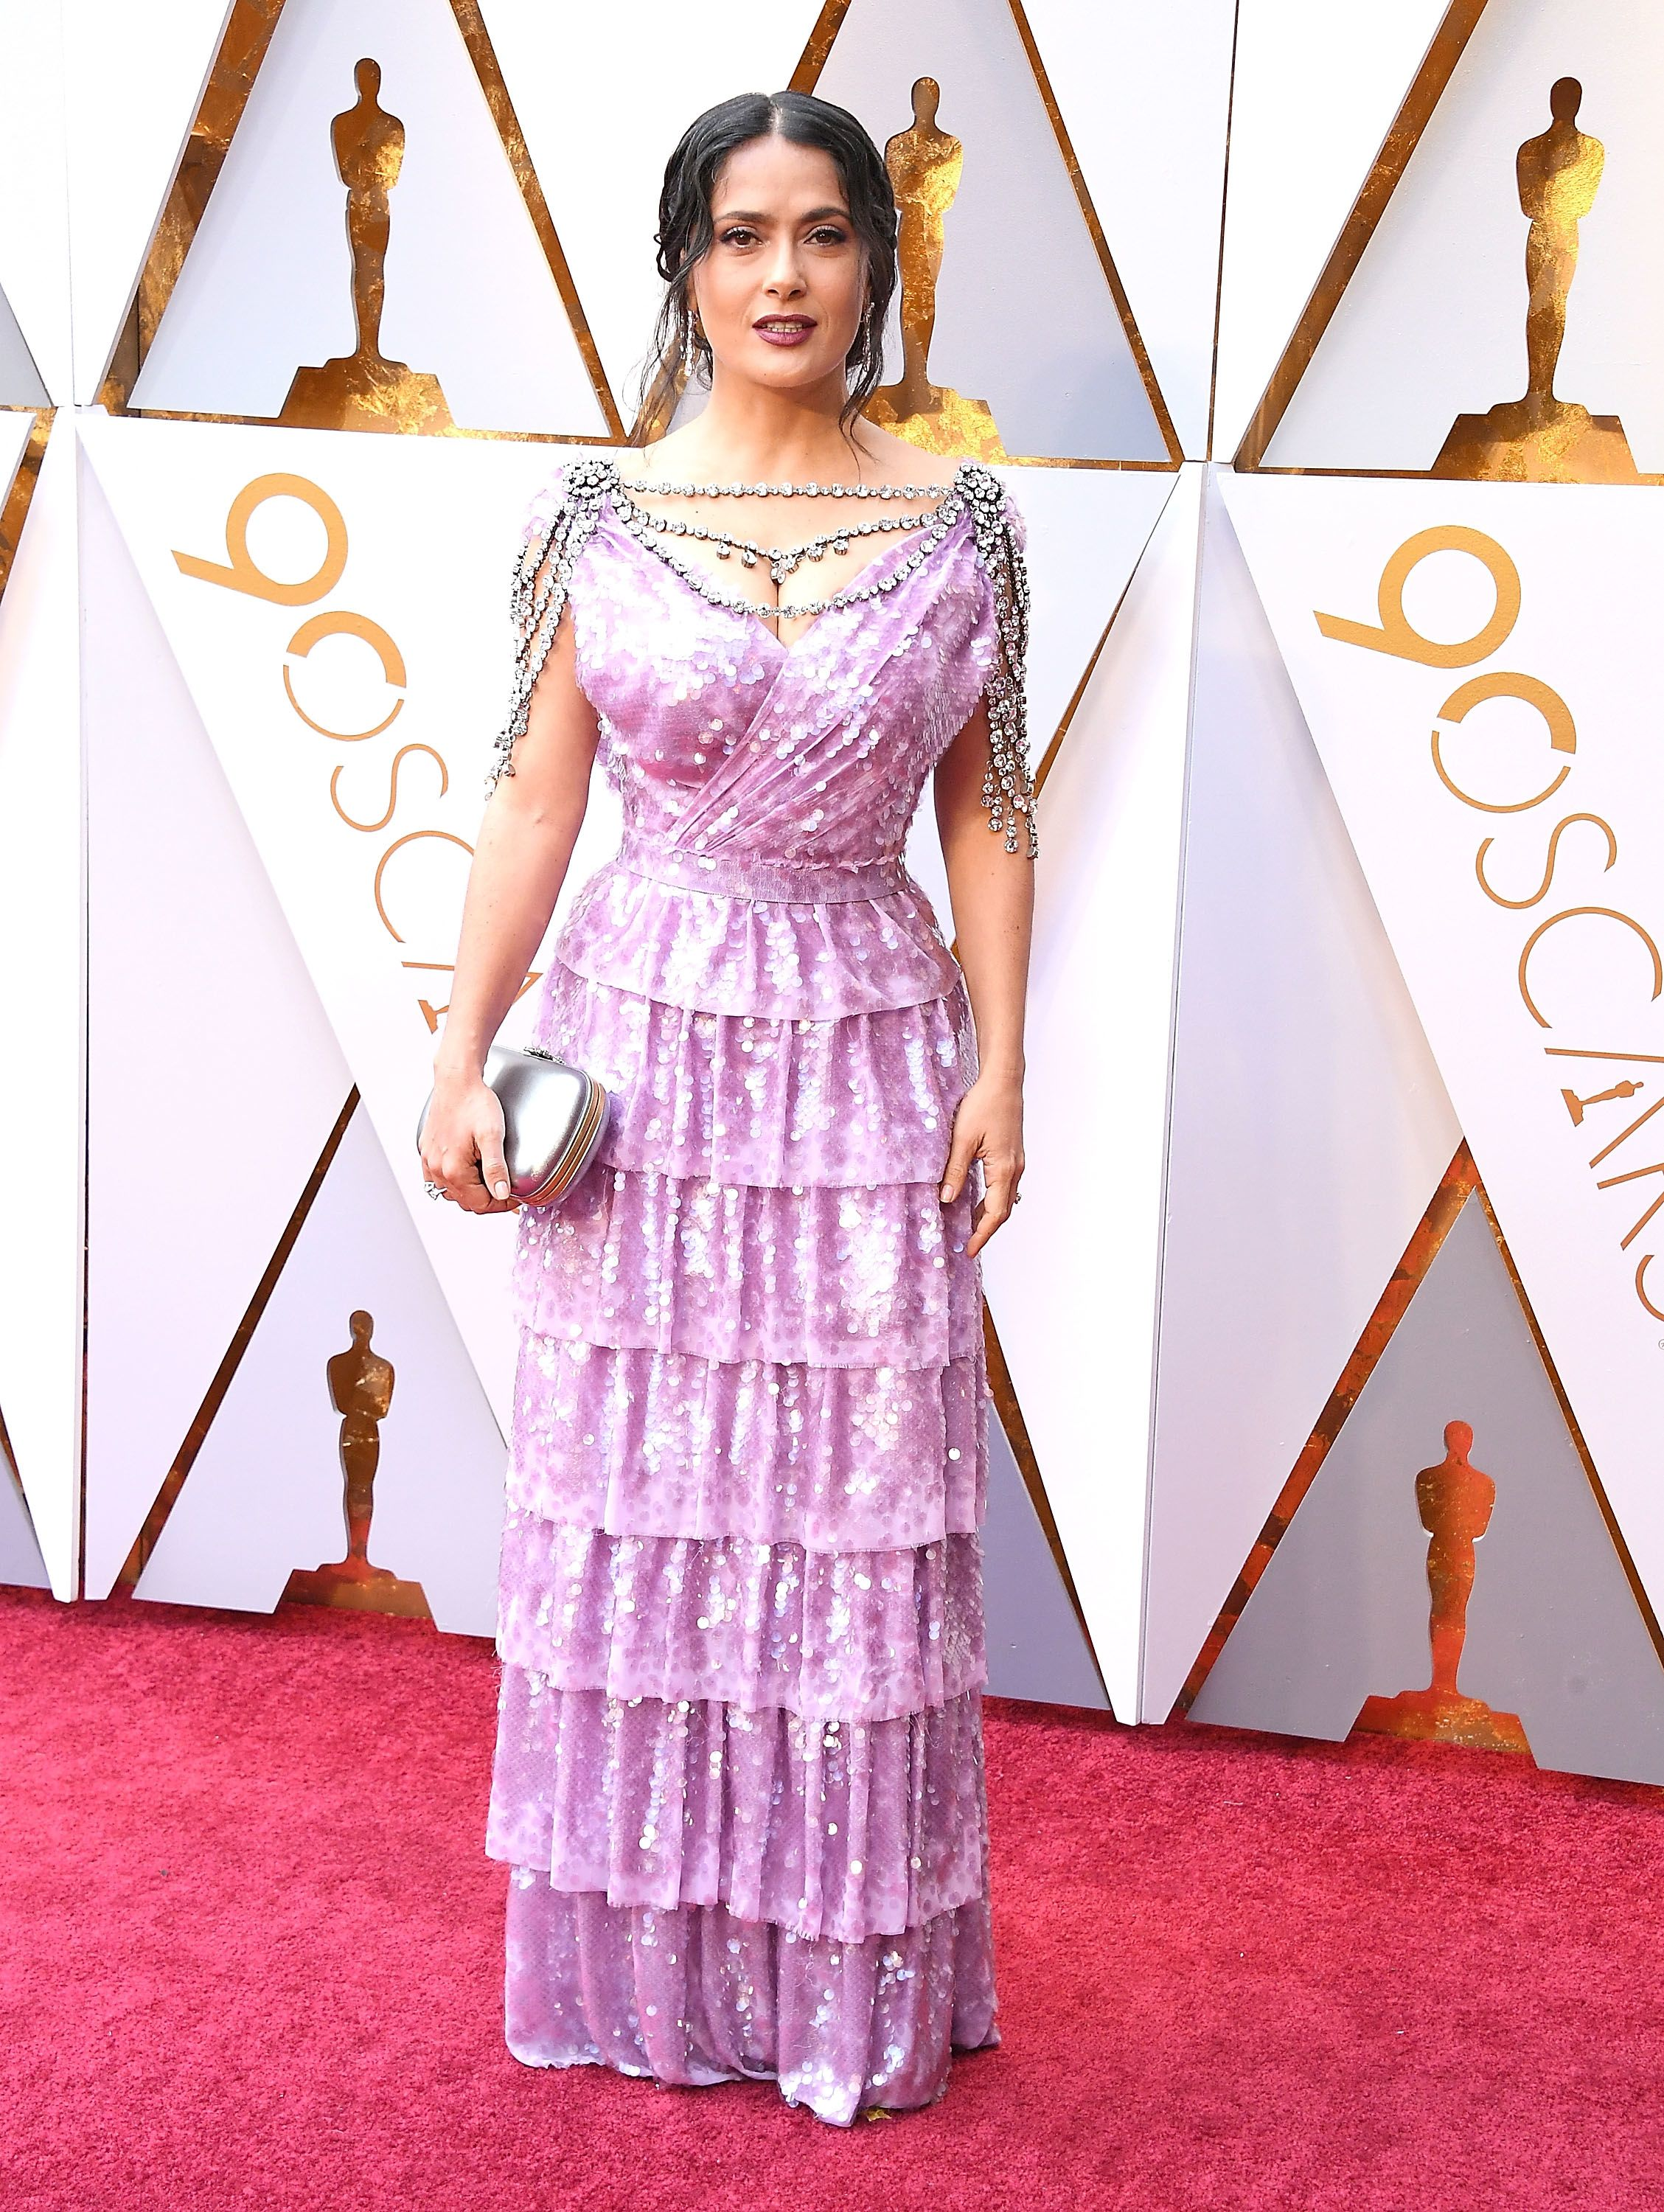 HOLLYWOOD, CA - MARCH 04: Salma Hayek arrives at the 90th Annual Academy Awards at Hollywood & Highland Center on March 4, 2018 in Hollywood, California. (Photo by Steve Granitz/WireImage)